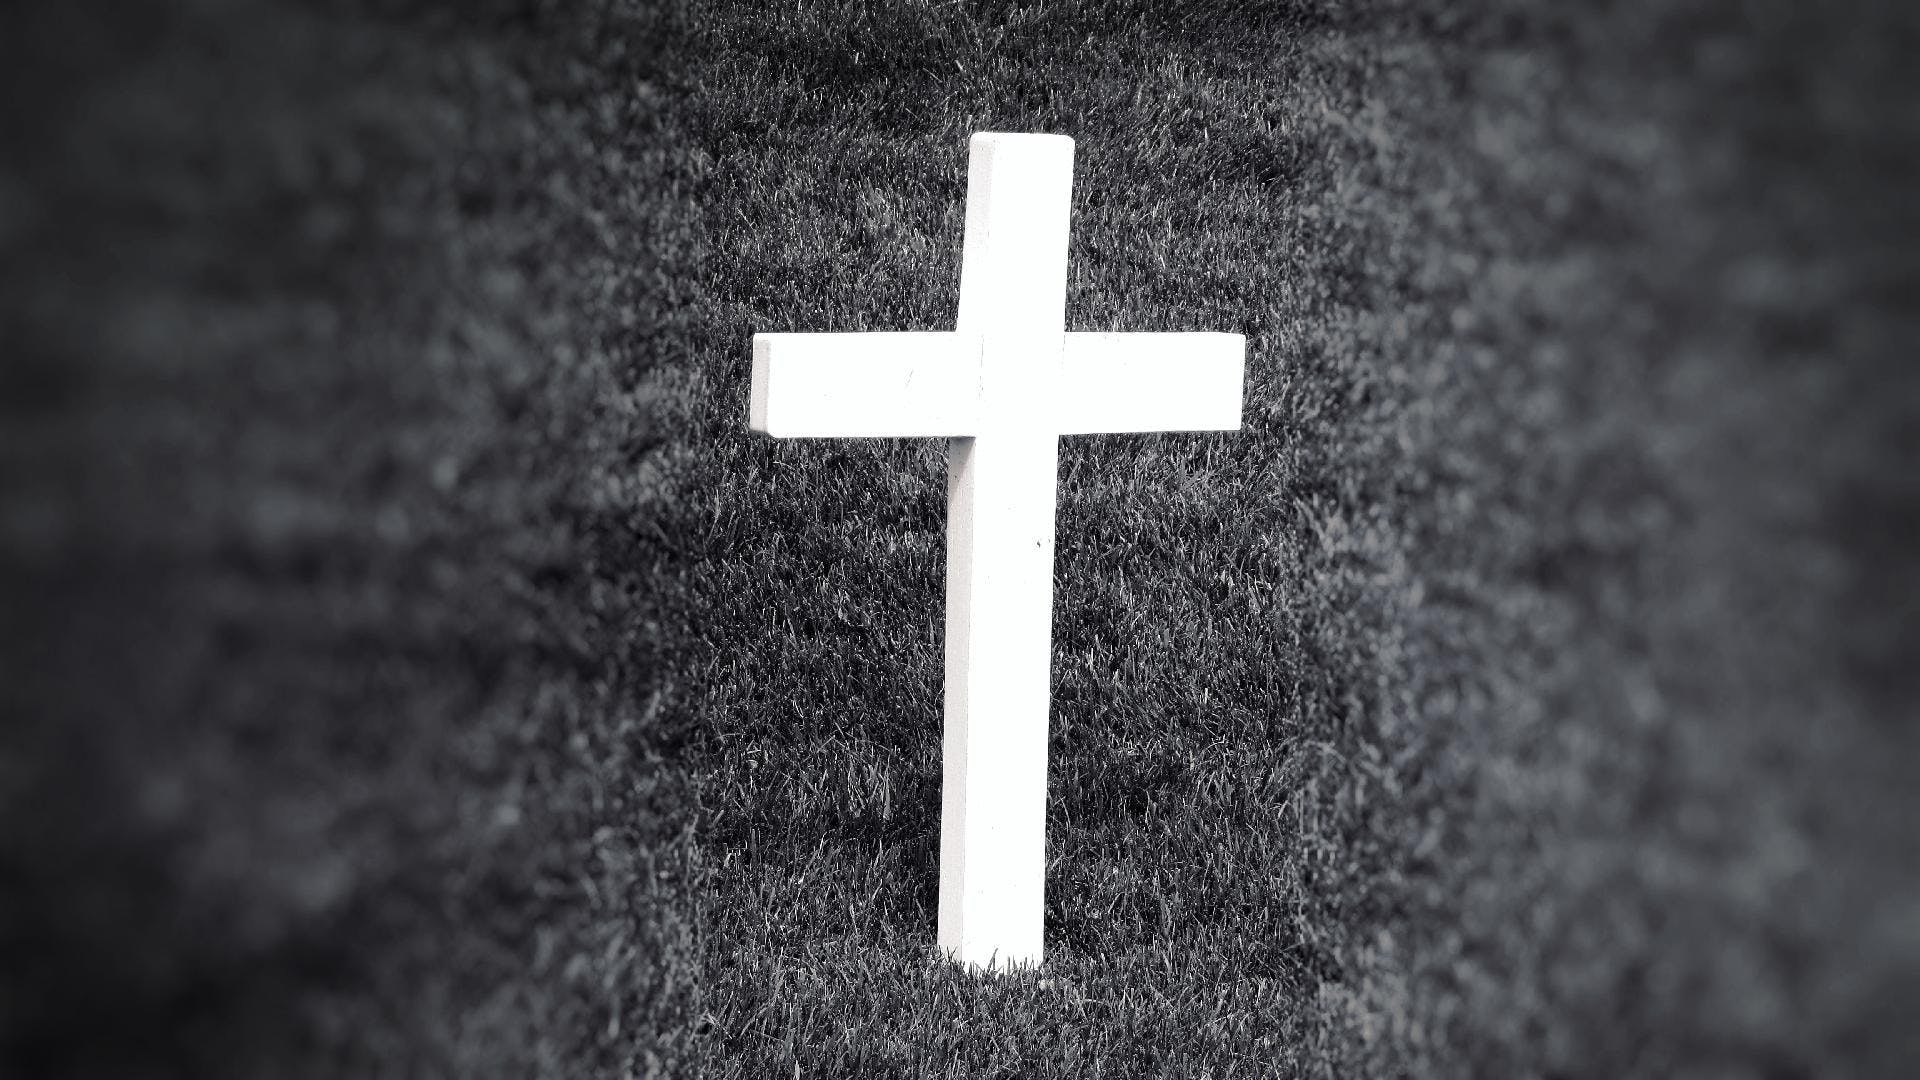 Grayscale Photography of Cross